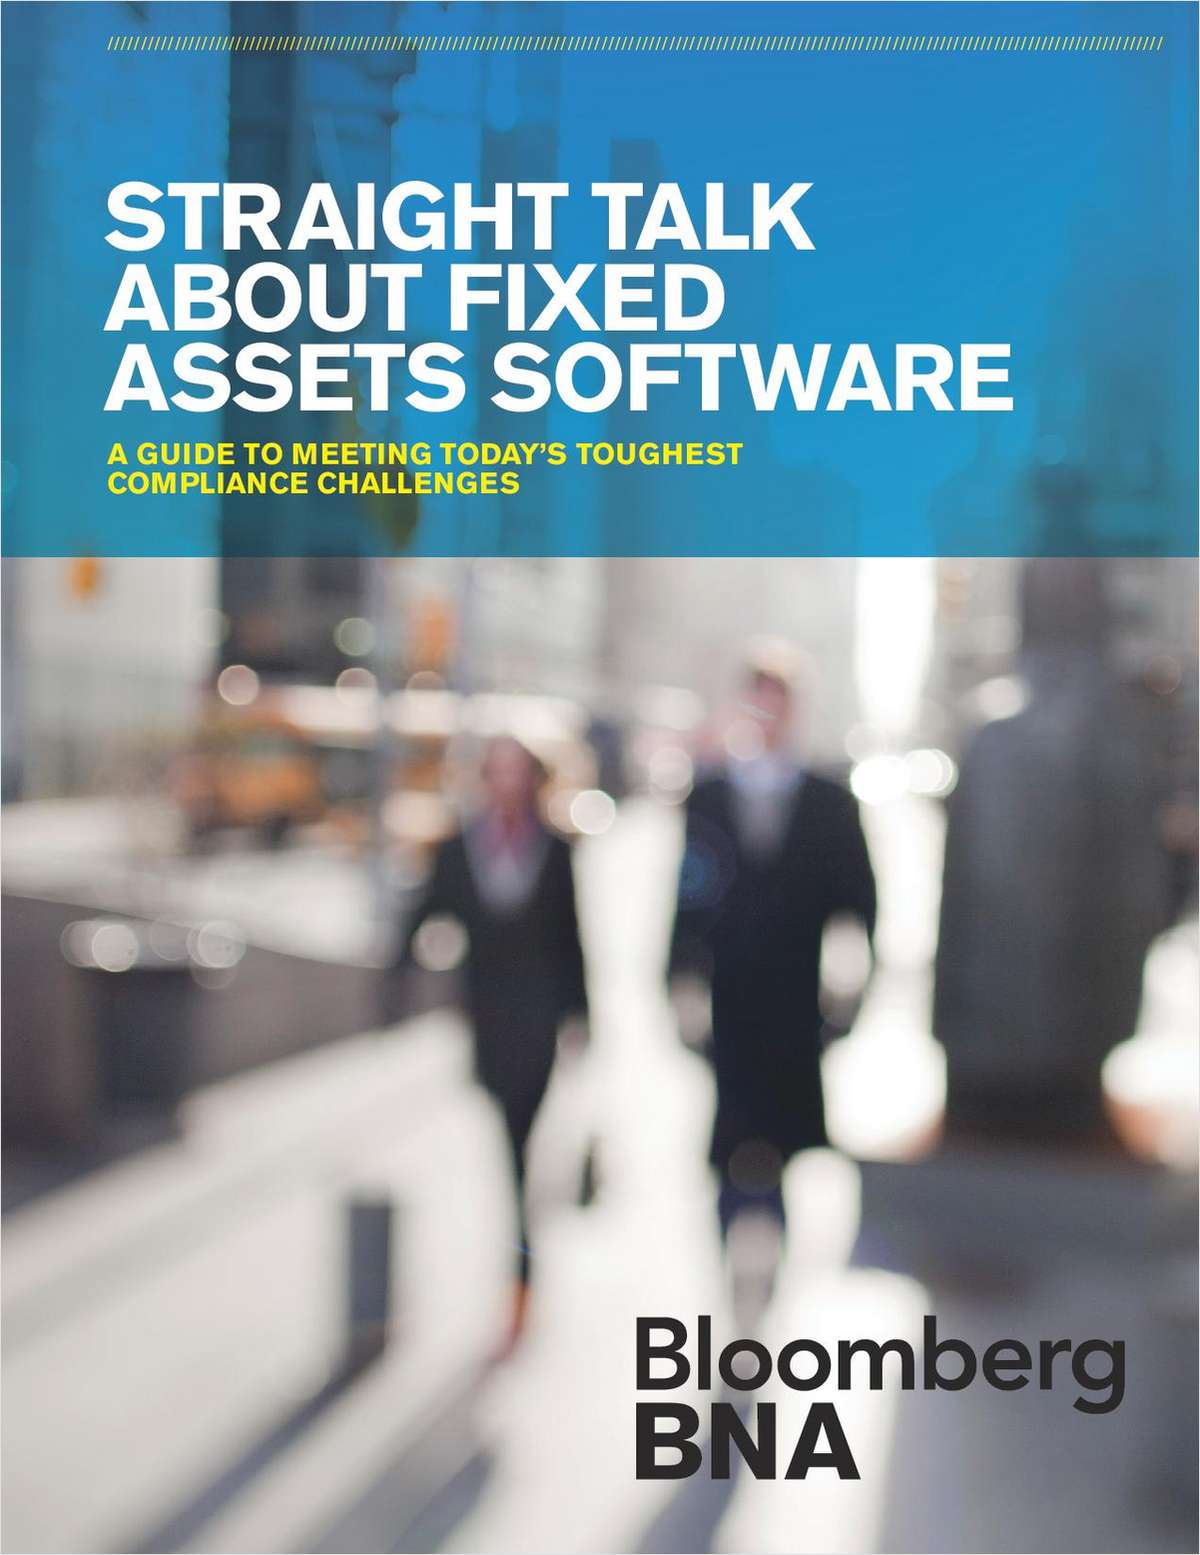 Fixed Assets Software Straight Talk